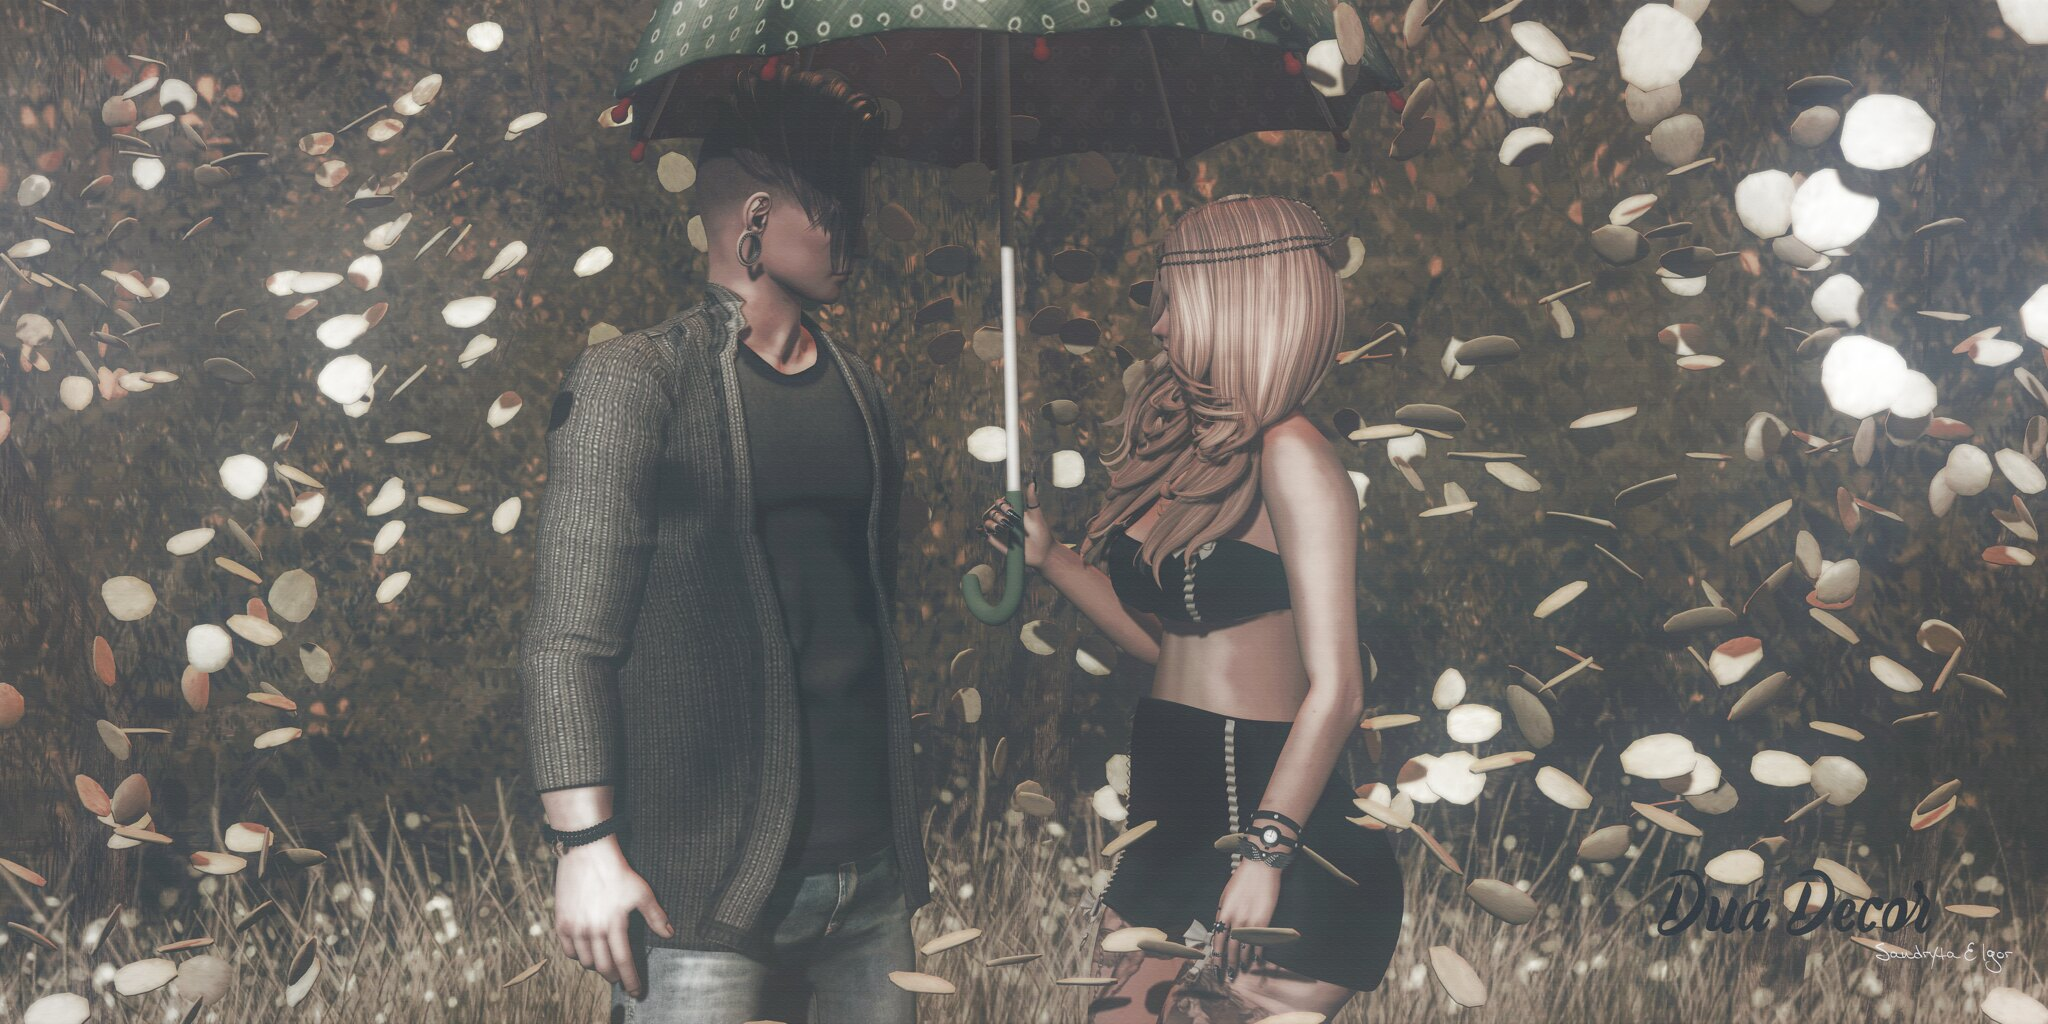 POST🔥 #622 | Phoenix | NOIR | EMPORIUM | ISUKA | DOUX | LAVAROCK | Black Fair | Bodyfy | Swallow | CS | Pose Fair |